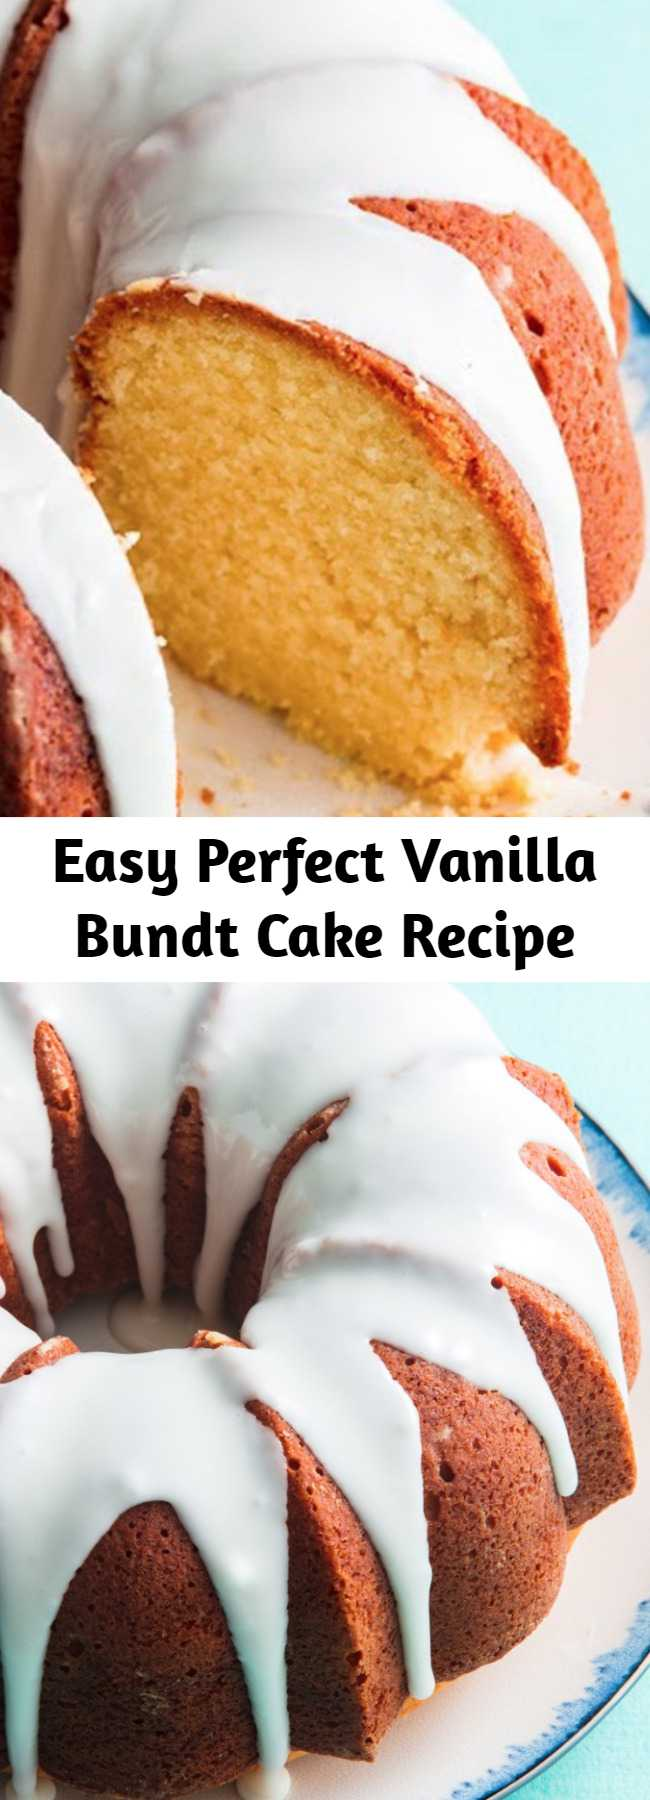 Easy Perfect Vanilla Bundt Cake Recipe - We tested this cake over and over again until it was absolutely perfect. Even the most amateur baker can nail it at home.